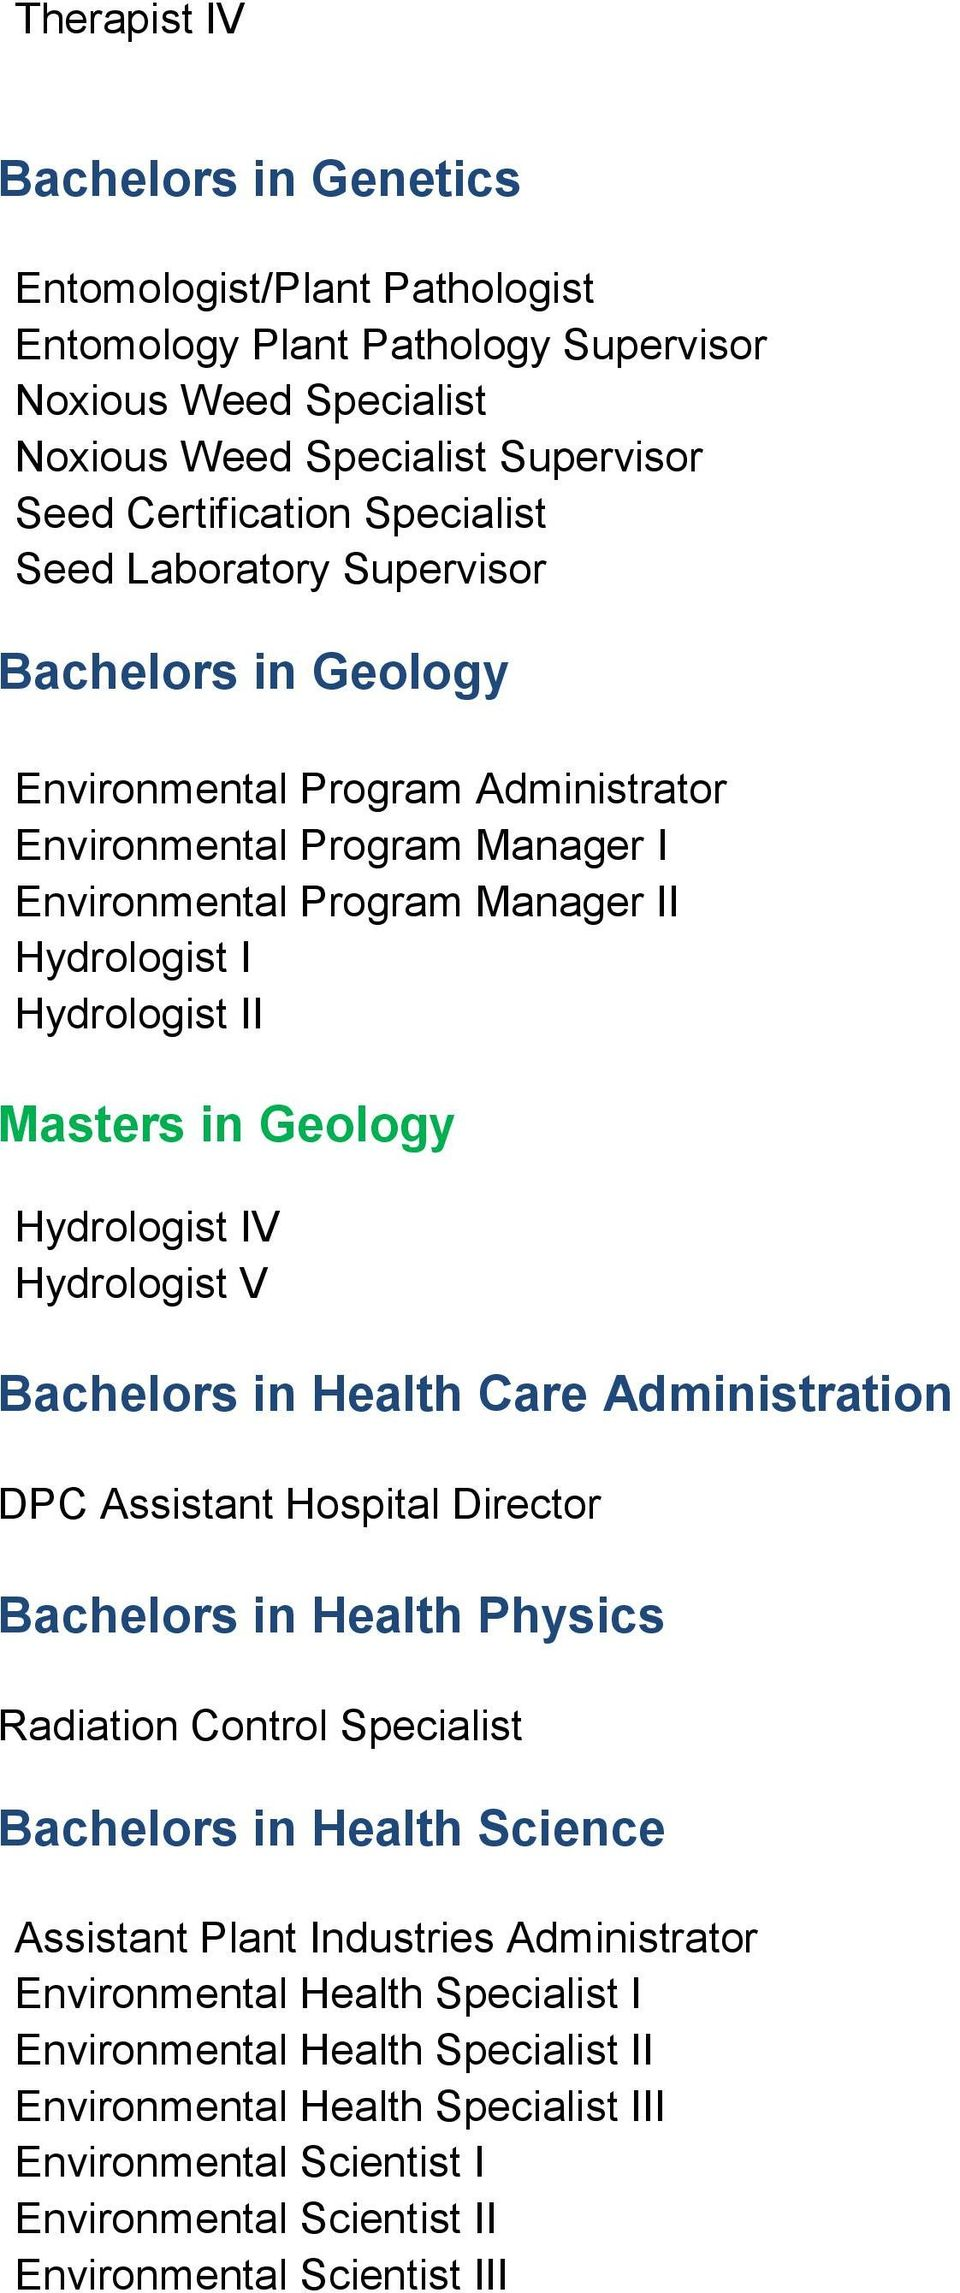 Hydrologist IV Hydrologist V Bachelors in Health Care Administration DPC Assistant Hospital Director Bachelors in Health Physics Radiation Control Specialist Bachelors in Health Science Assistant